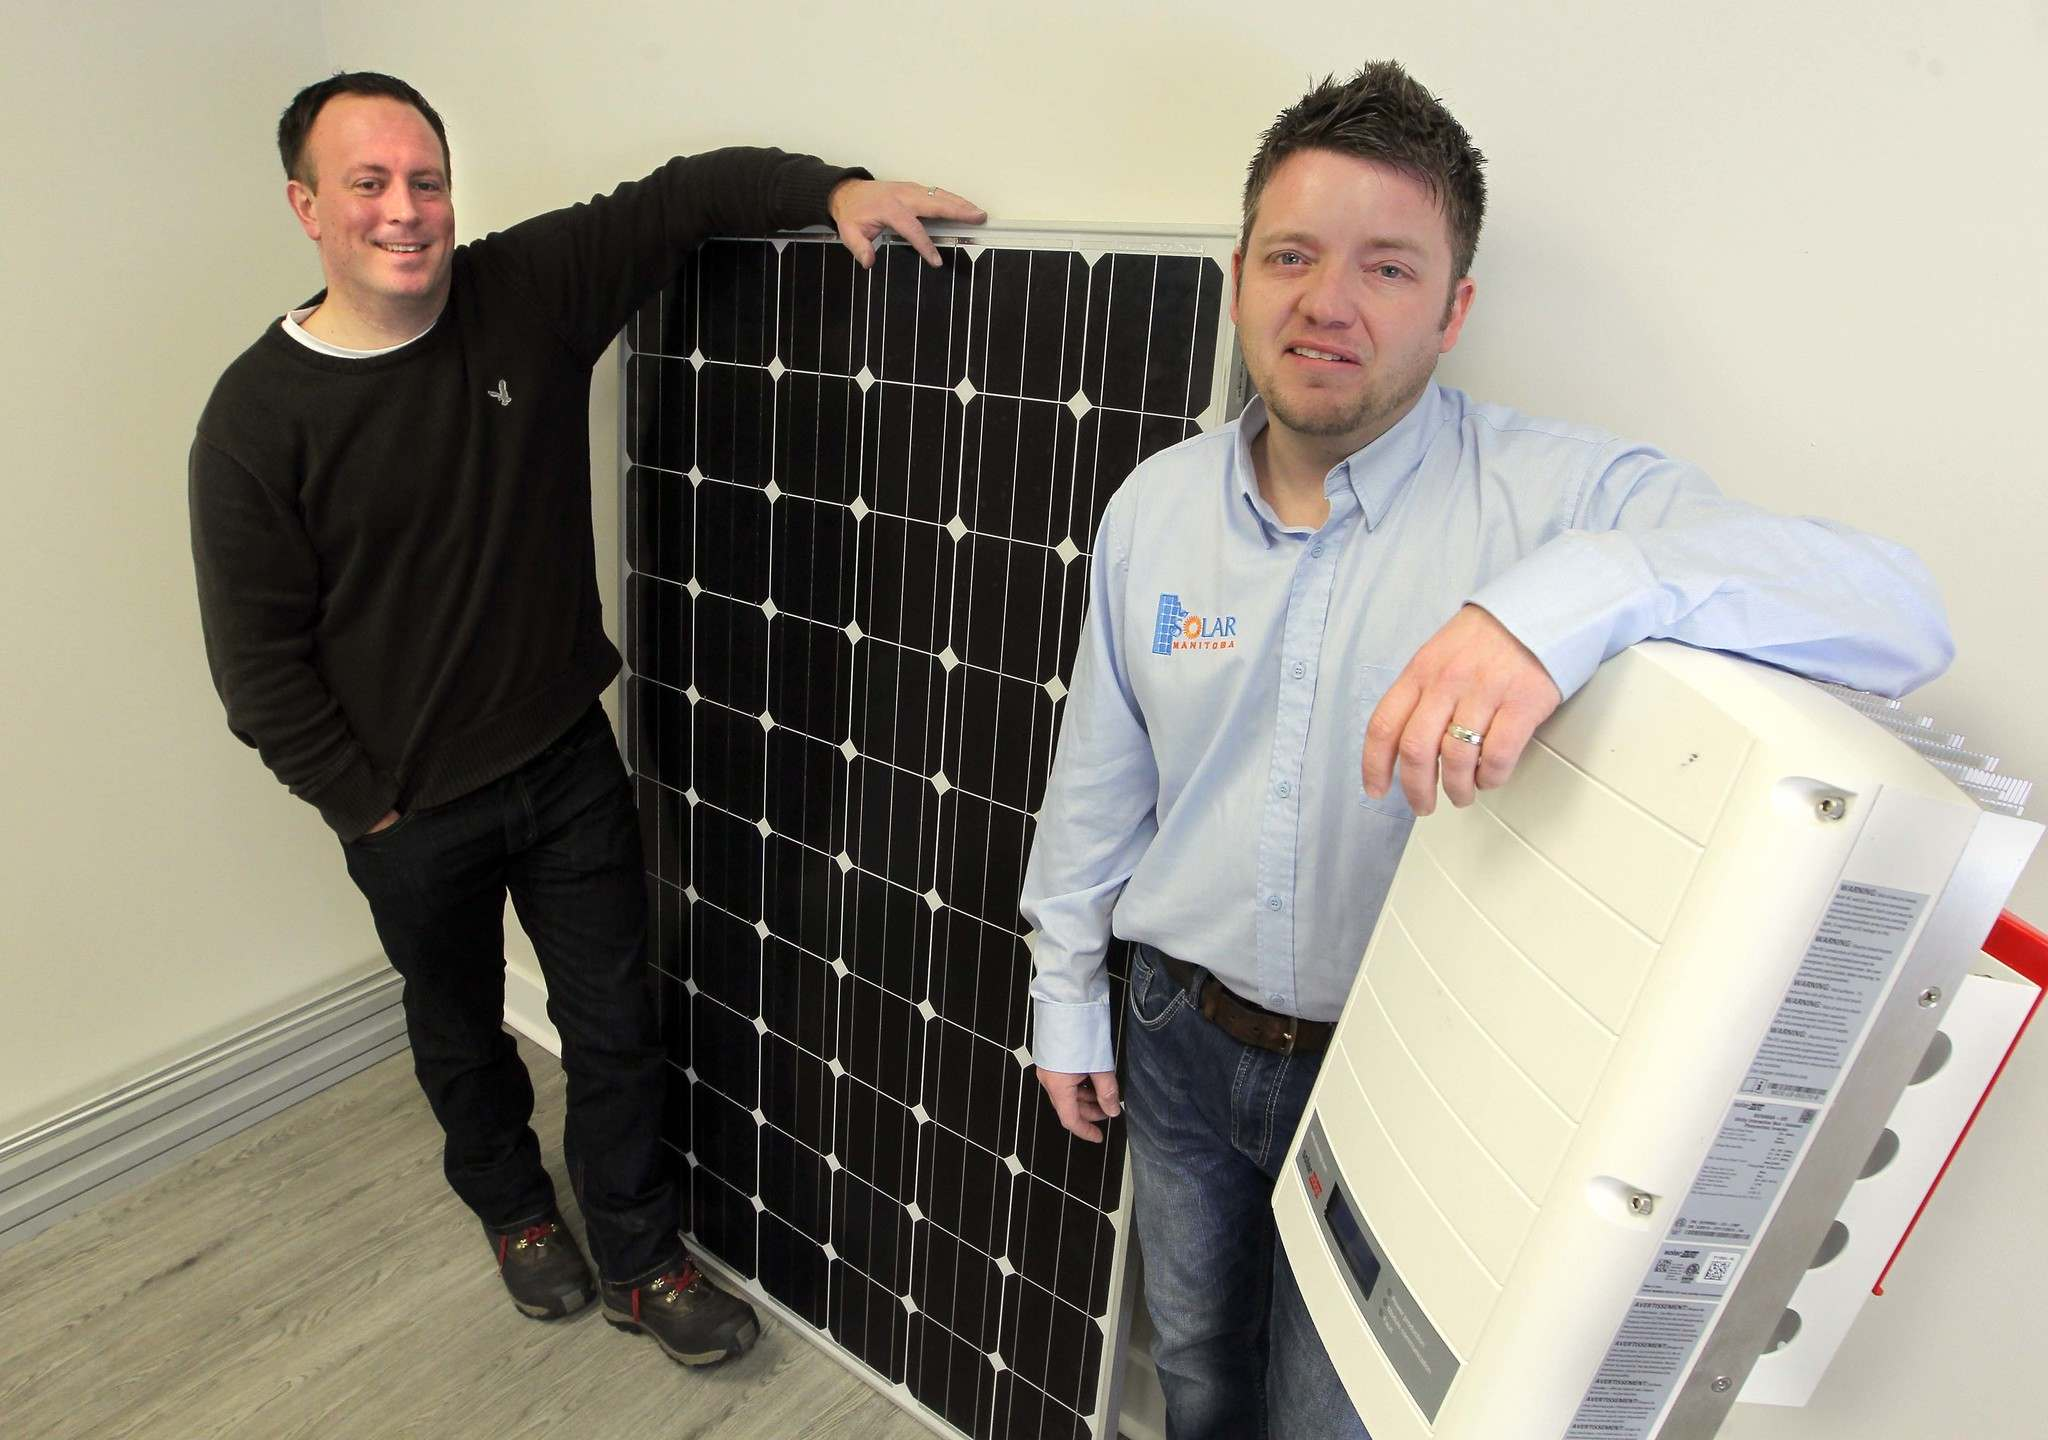 Alex Stuart, left, and Justin Phillips, co-founders of Sycamore Energy, pose with a solar panel system.</p>